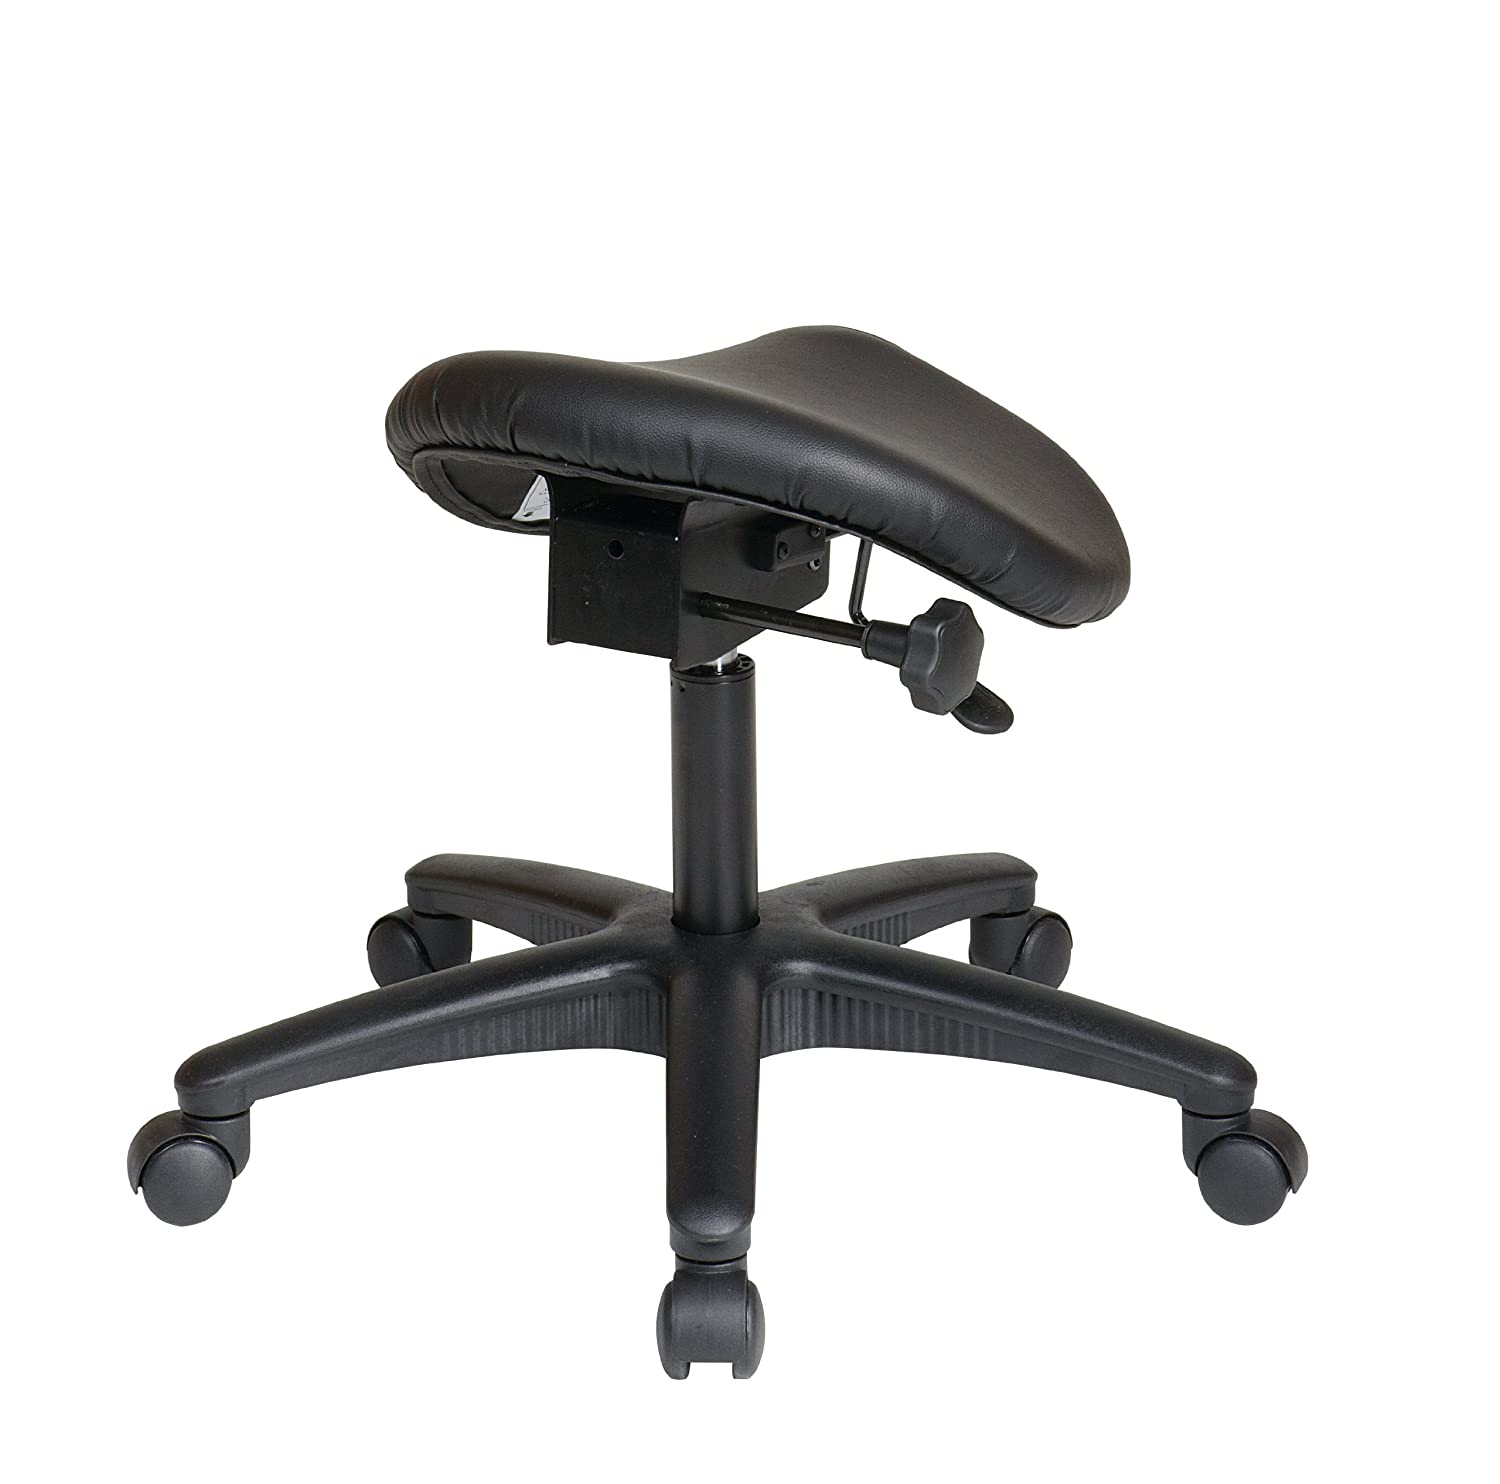 Backless ergonomic chair - Amazon Com Office Star Backless Office Stool With Saddle Seat And Angle Adjustment Black 19 To 24 Inch Adjustable Height Kitchen Dining